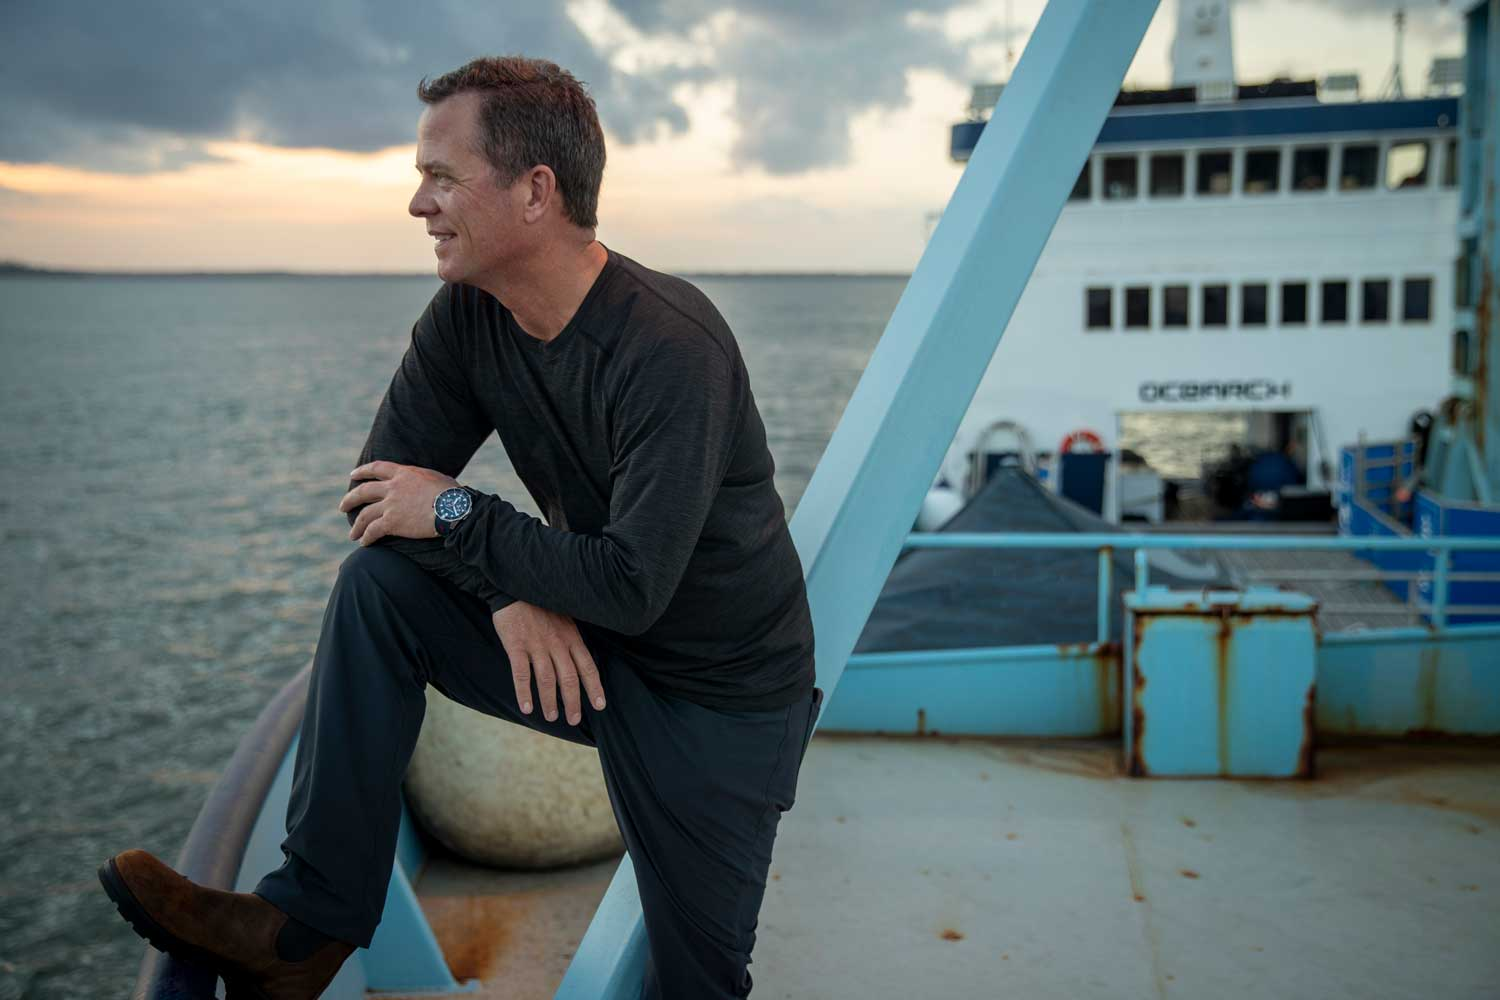 OCEARCH Founding Chairman and expedition leader Chris Fischer aboard the M/V OCEARCH, which serves as an at-sea laboratory